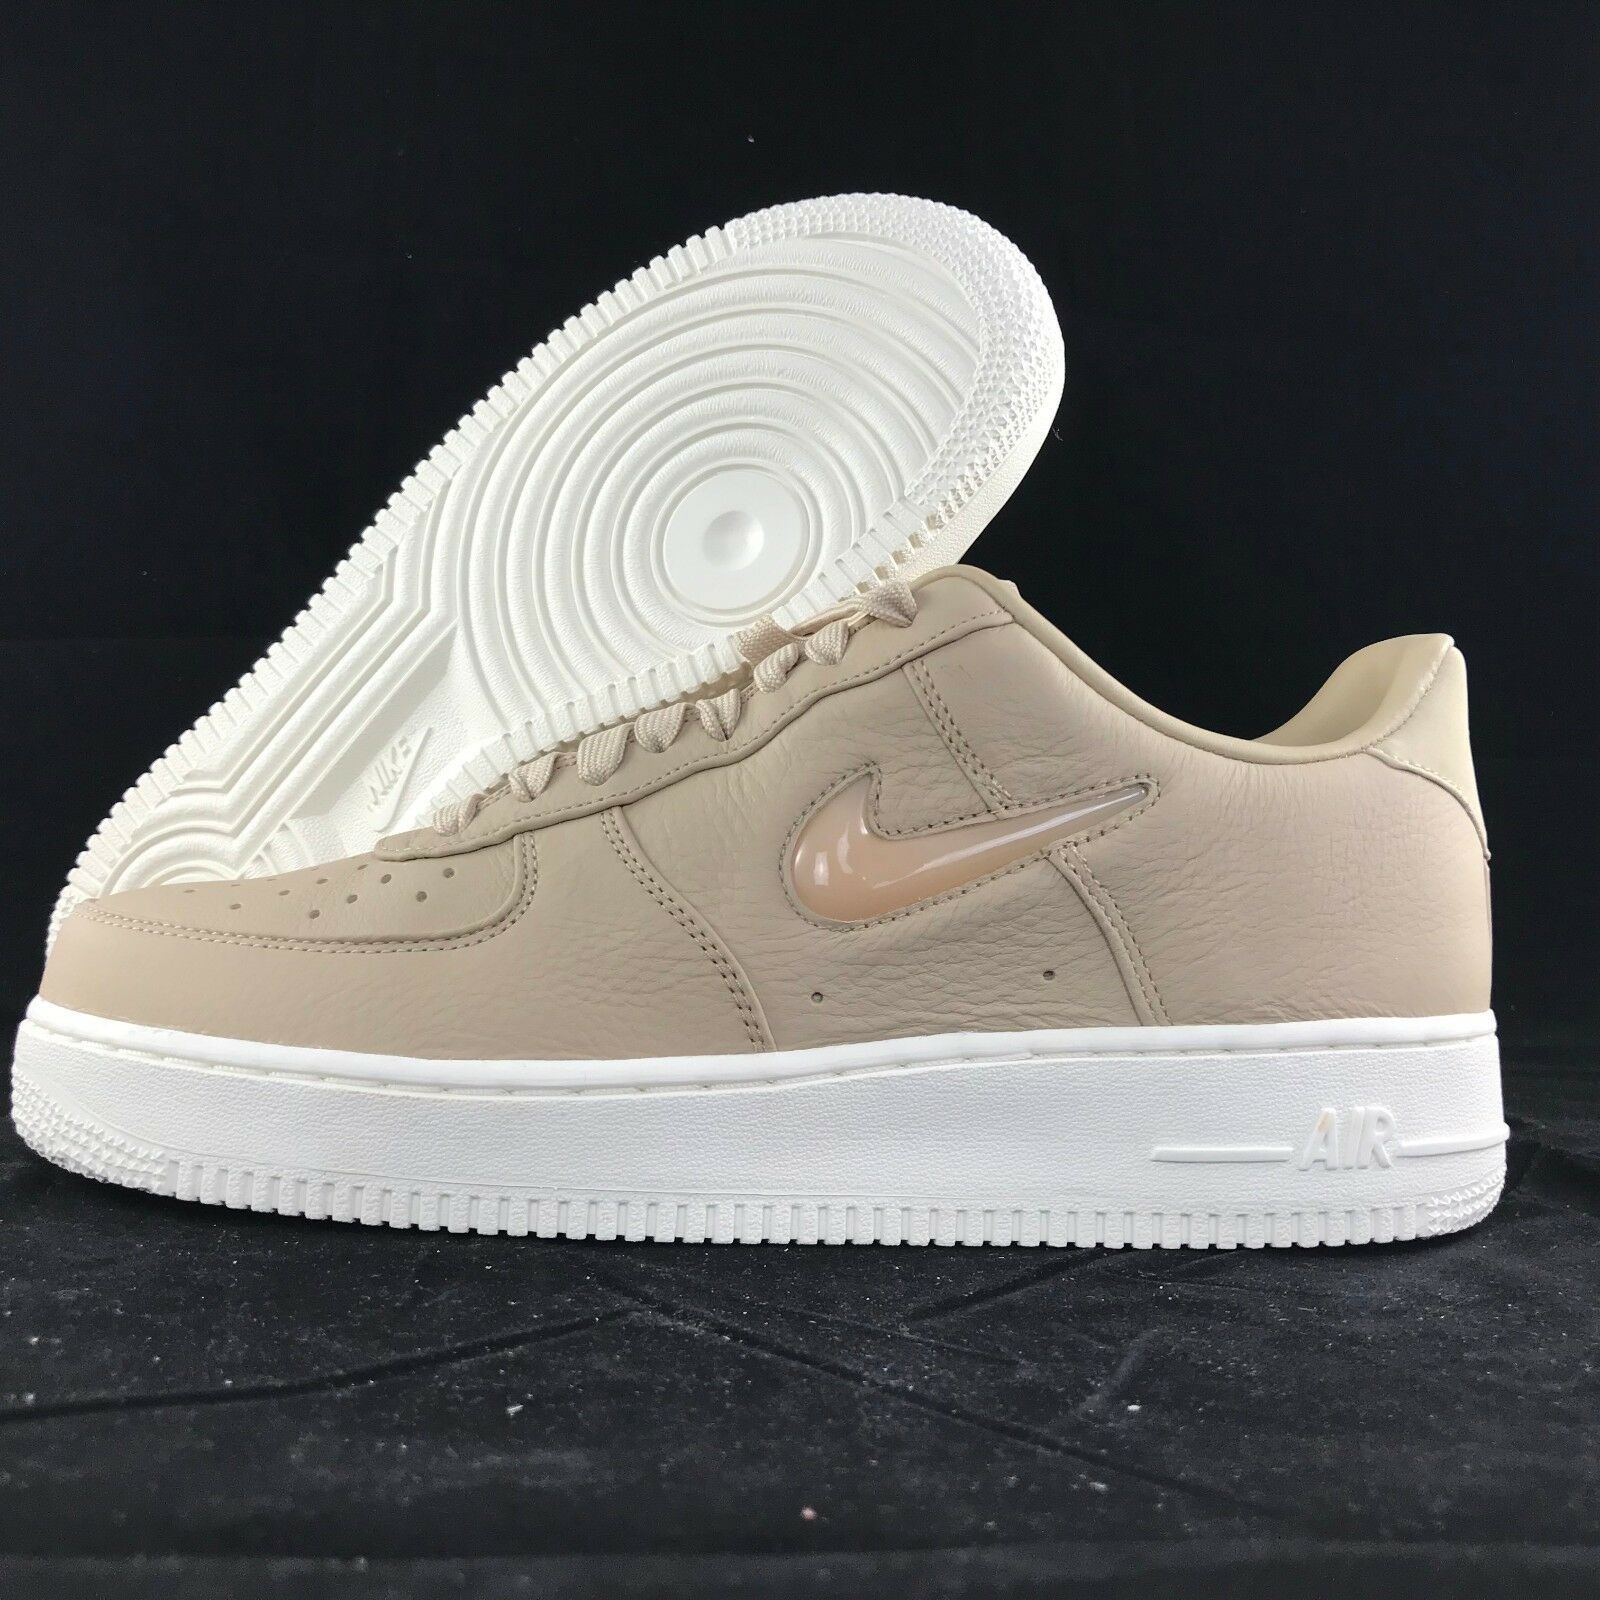 Nike Air One Force 1 One Air Retro PRM Mushroom Sail Jewel Swoosh 941912-200 Men's 7 NEW 0d1044